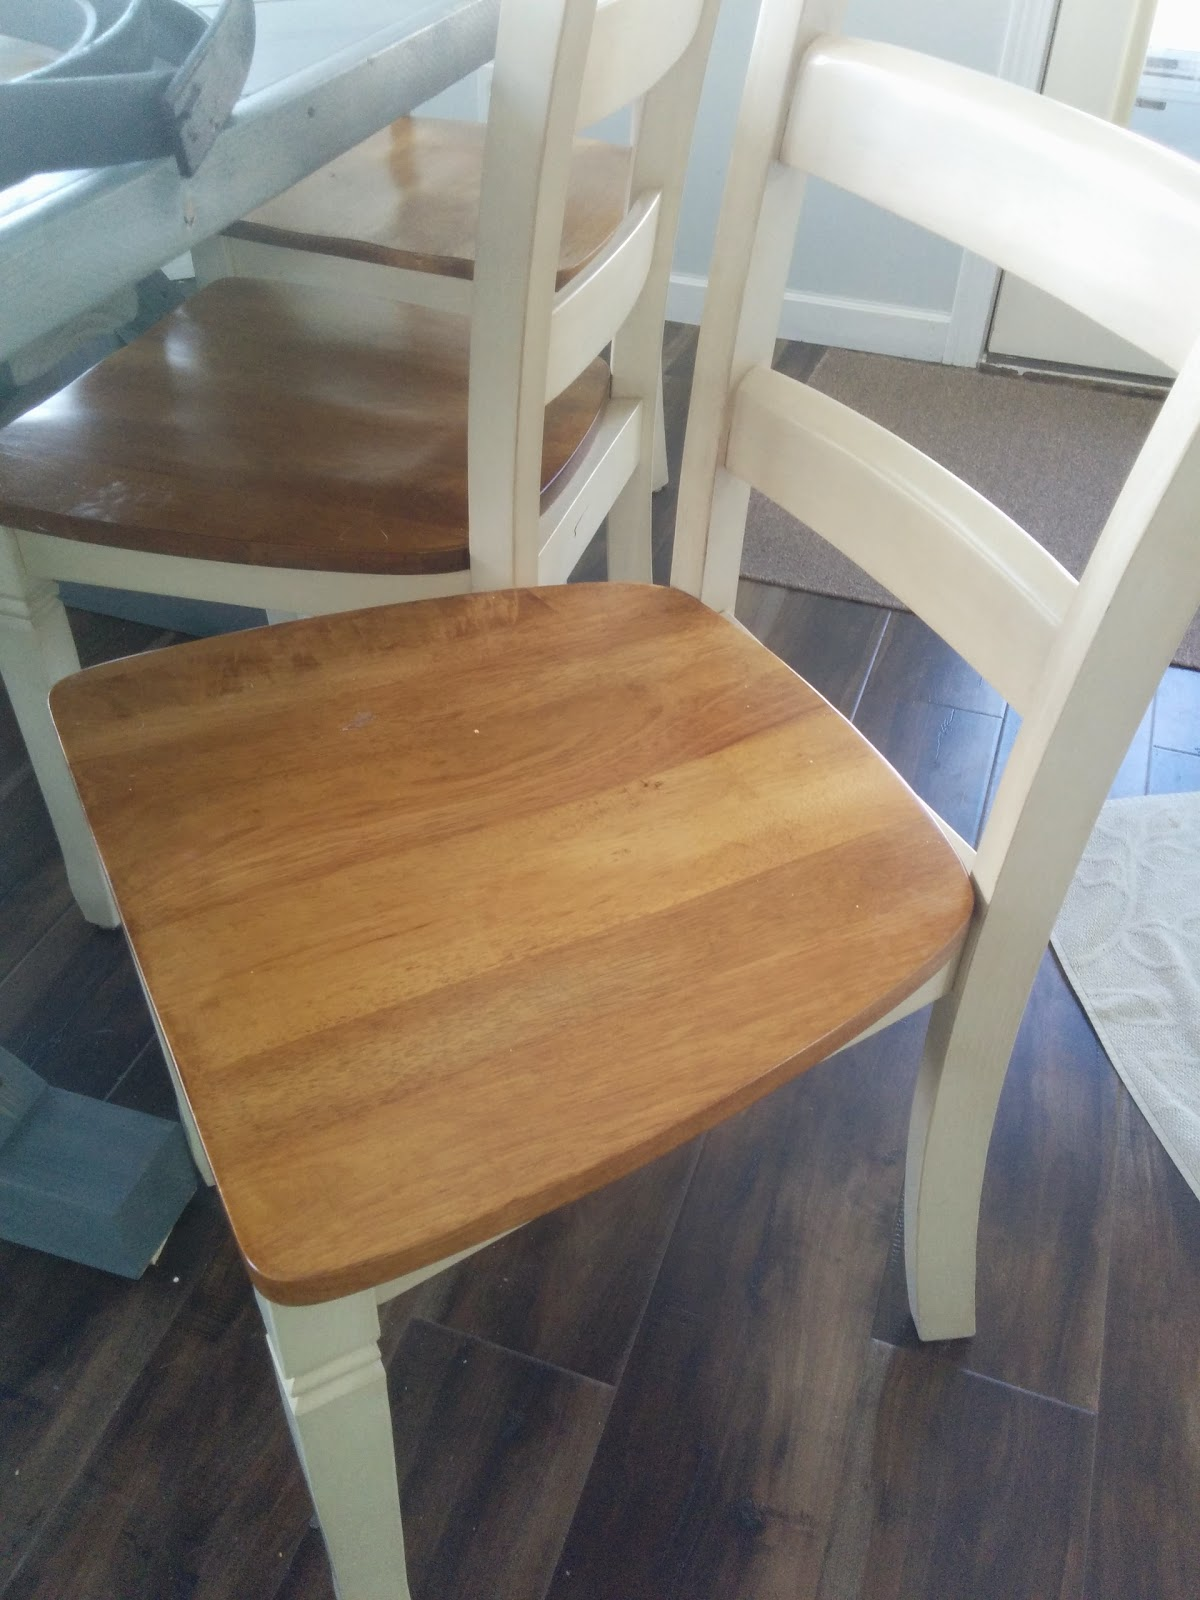 Opinions needed on dining room chairs